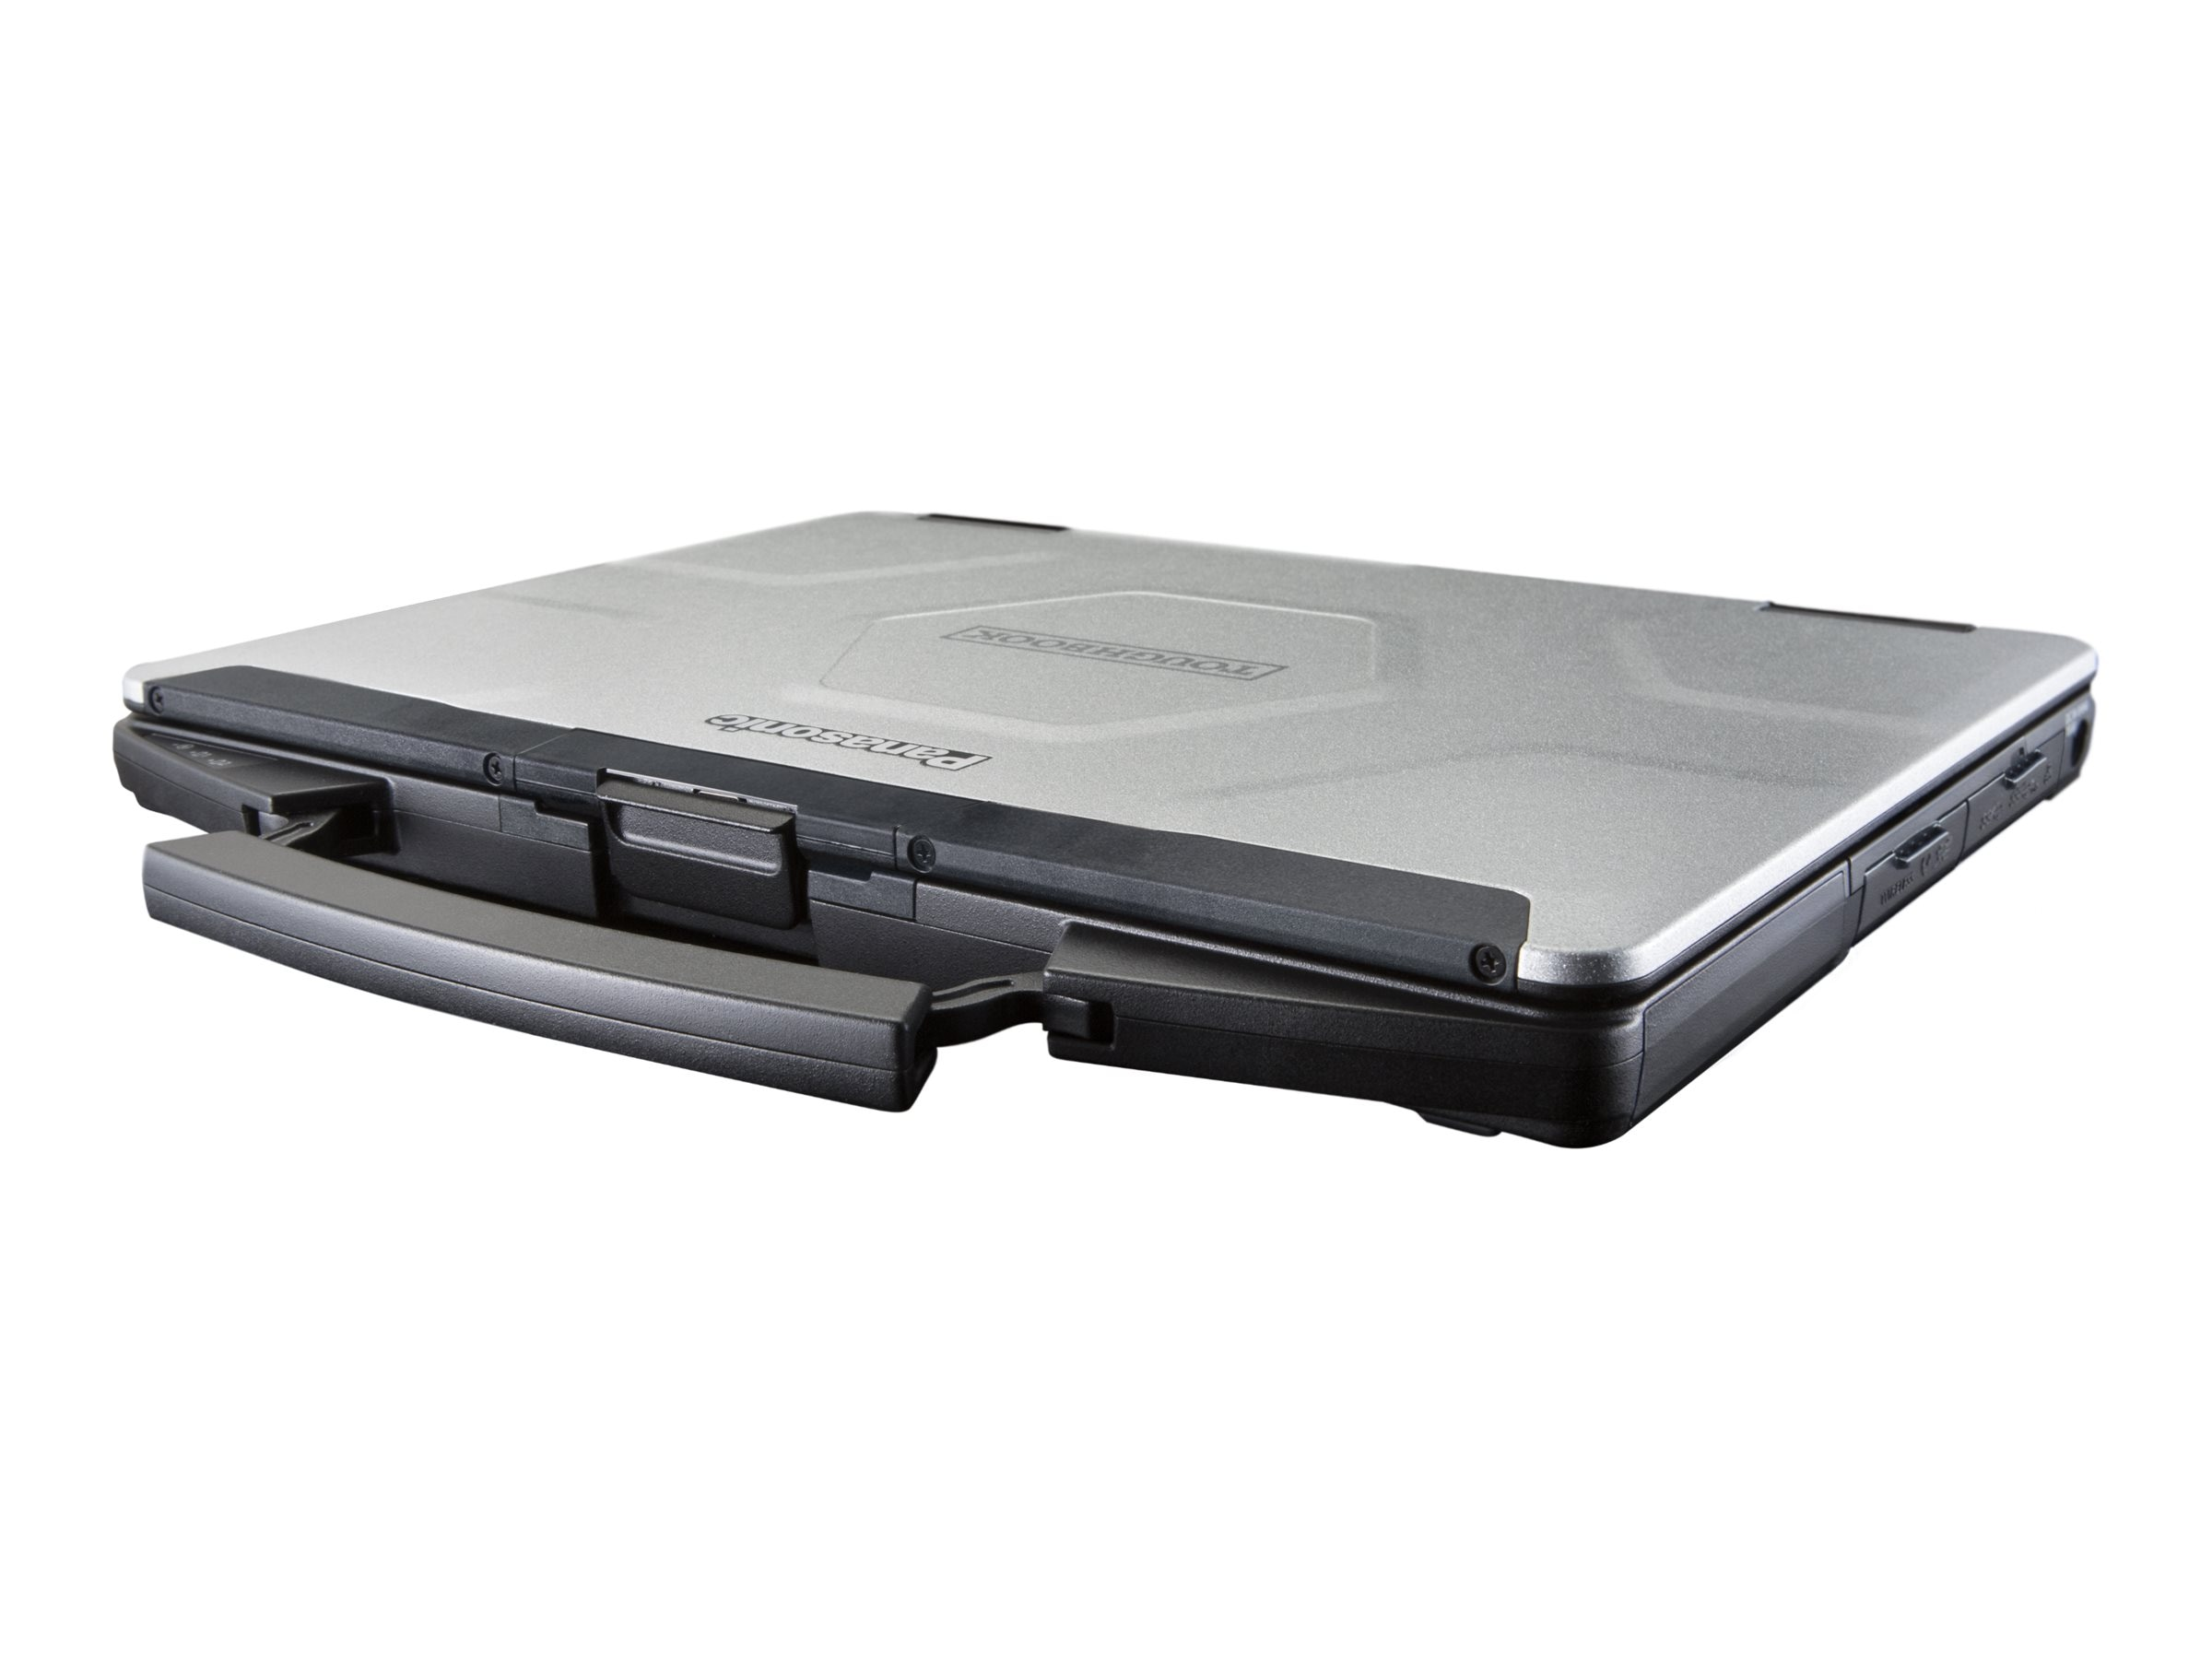 Panasonic Toughbook 54 16GB 14 FHD